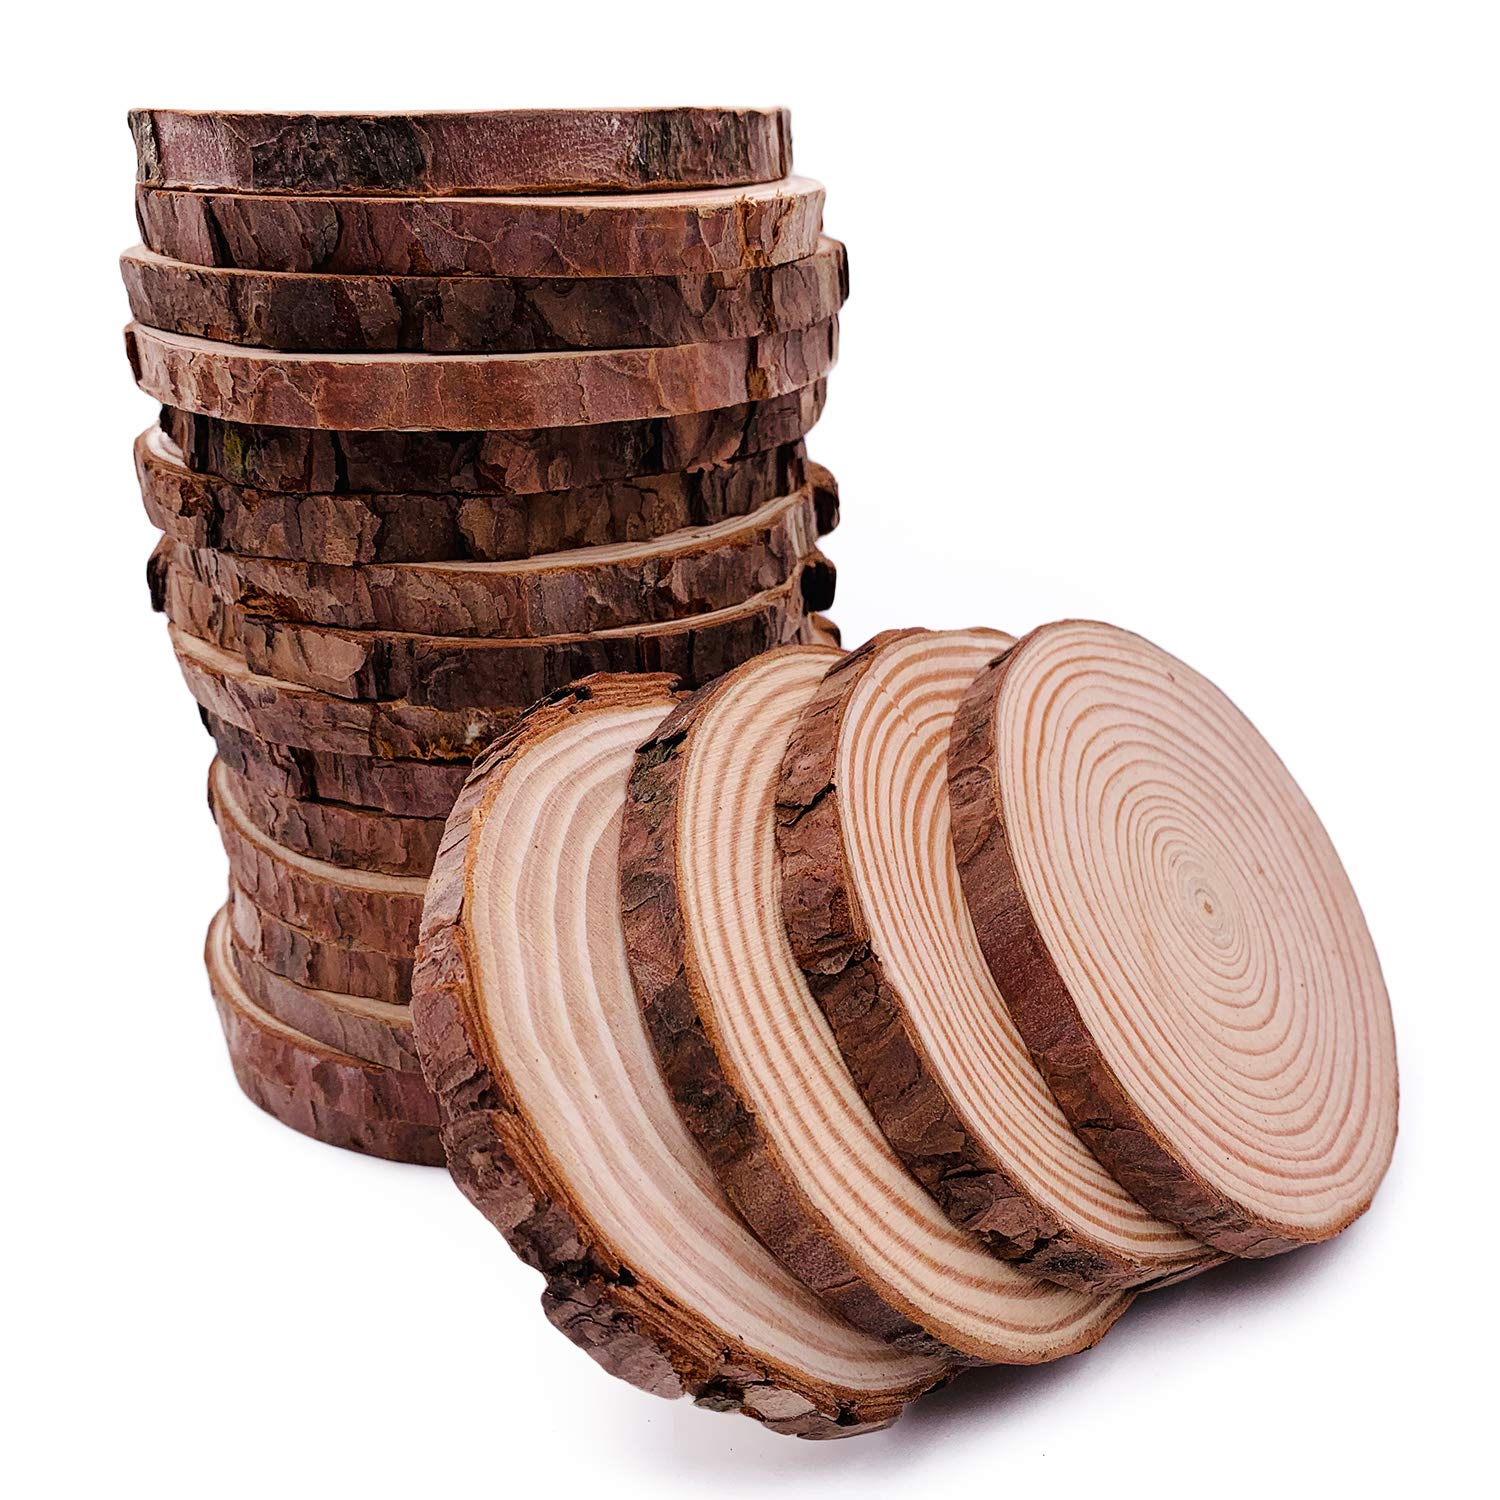 Unfinished Natural Wood Slices 20 Pcs 3.5-4 inch Craft Wood kit Circles Crafts Christmas Ornaments DIY Crafts with Bark for Crafts by William Craft by William Craft